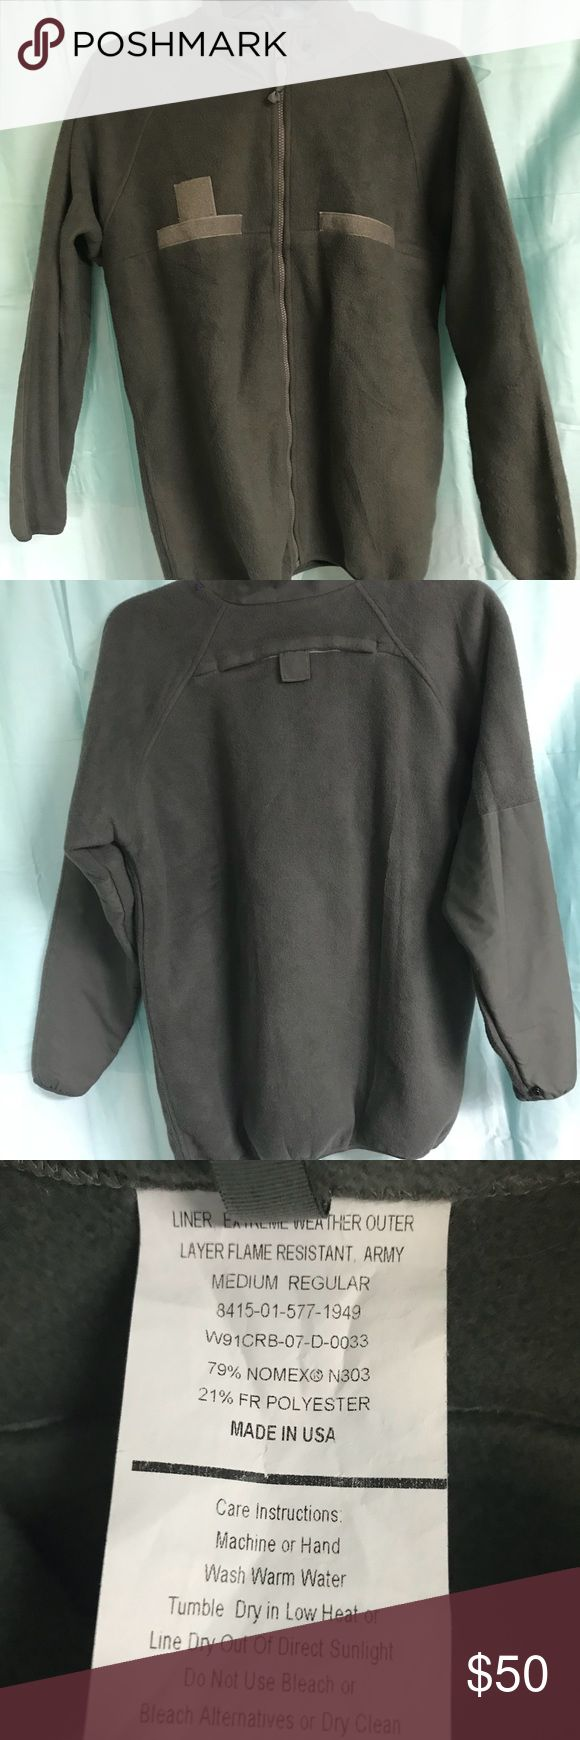 US ARMY ACU FLEECE JACKET ORIGINAL ISSUE EUC THIS IS A GREAT VERY WARM FLEECE JACKET.  US ARMY ISSUE.  ANOTHER GREAT CLOSET FIND. WAS HARDLY WORN us army Jackets & Coats Military & Field